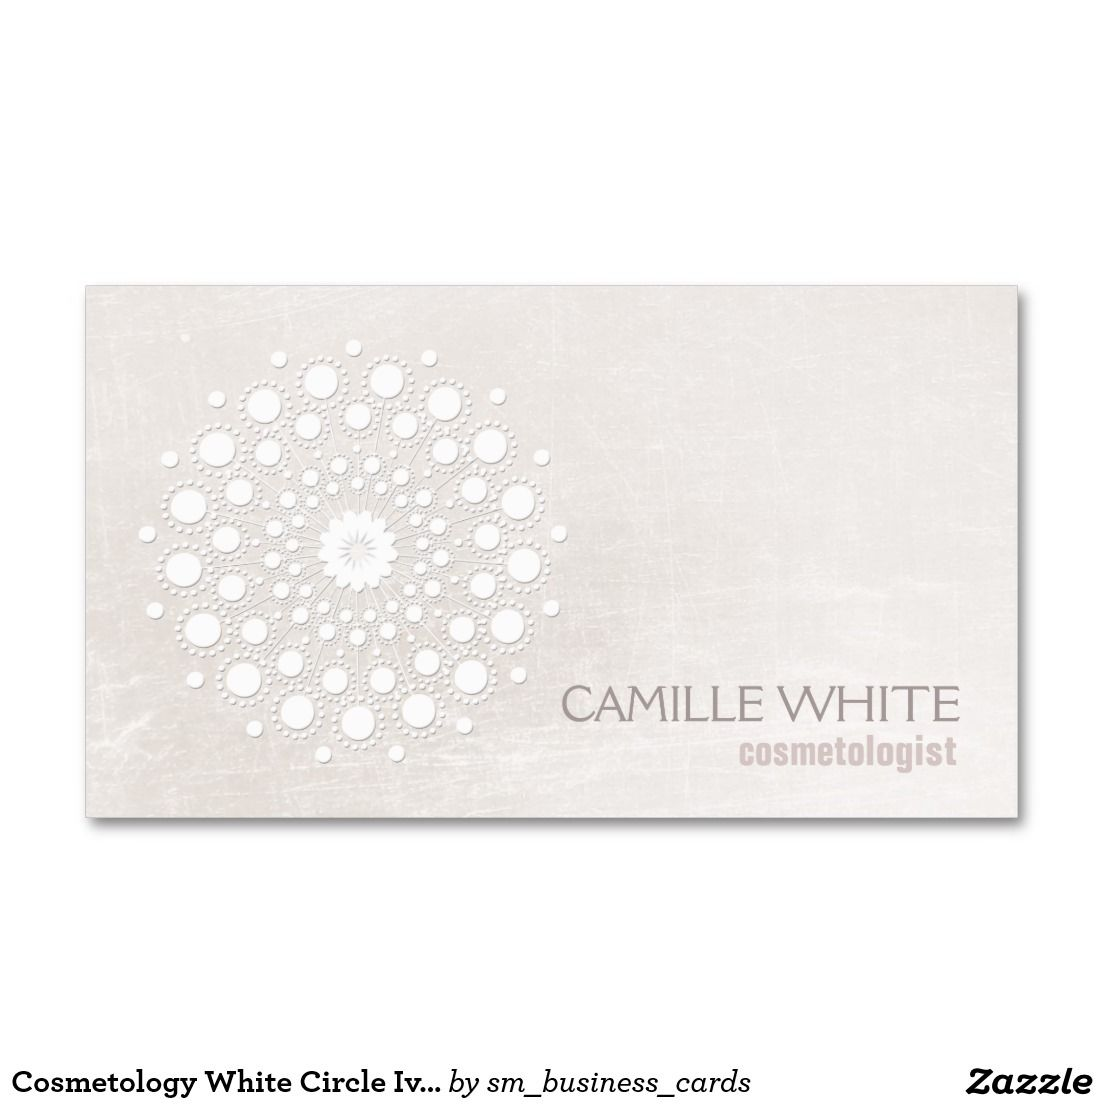 Chic elegant white circle logo white cosmetologist business card cosmetology white circle ivory texture elegant spa pack of standard business cards reheart Choice Image